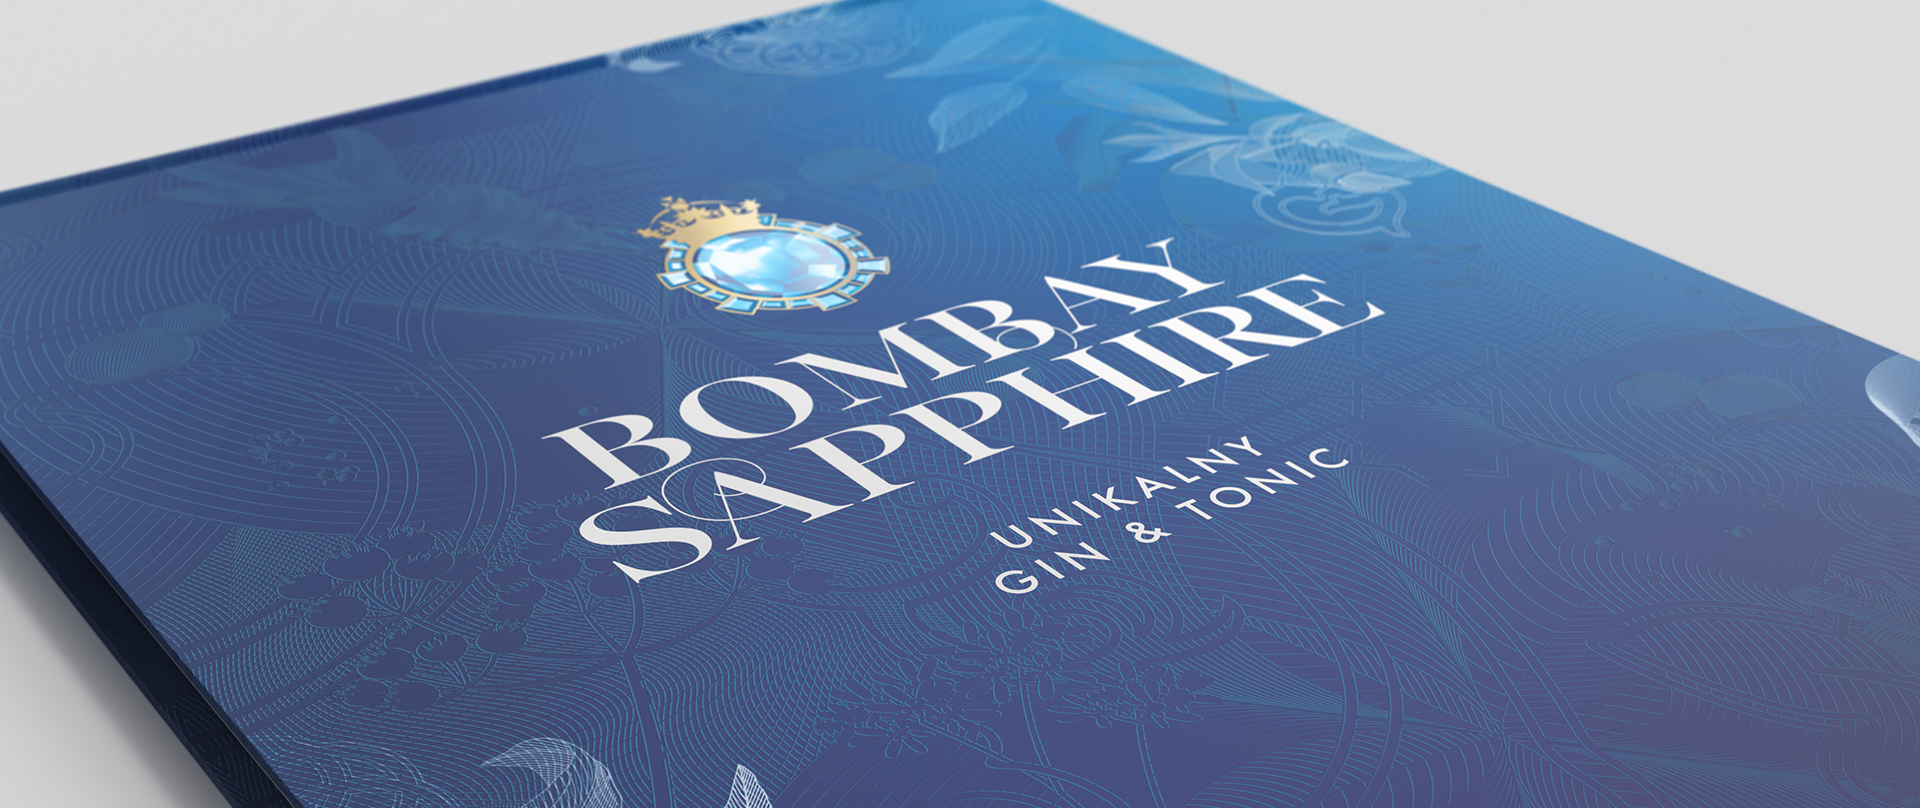 Booklet Bombay Sapphire